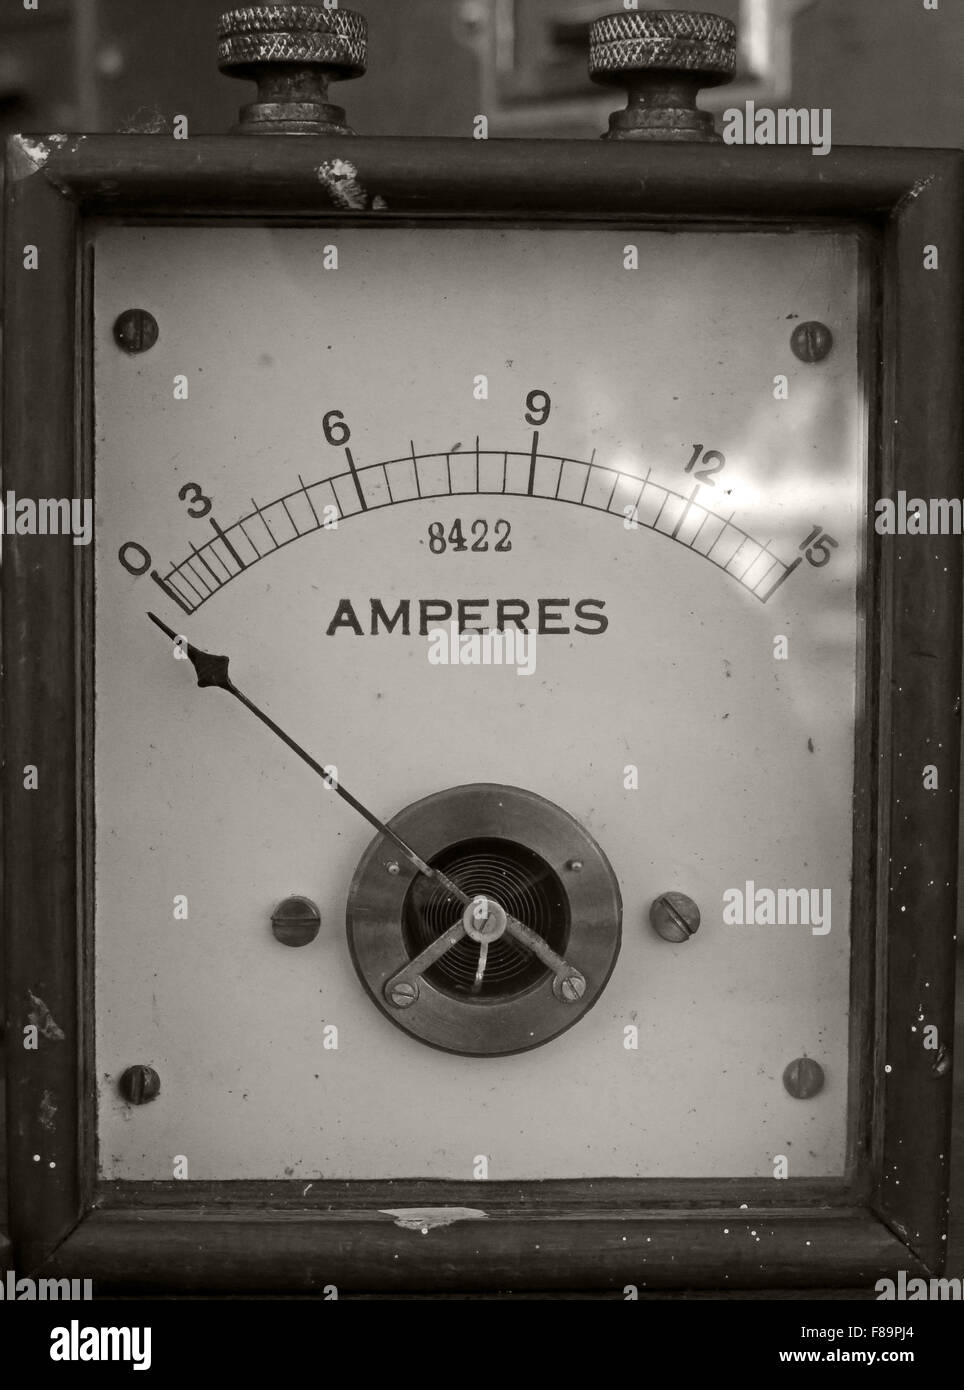 Vintage,antique,history,historic,simple,basic,old,power,classic,electric,electrical,electricity,ammeter,amp,ampere,amperes,amps,1900,1900s,1901,1902,1903,8422,wood,wooden,case,England,English,old,metre,British,GB,UK,industrial,industry,sepia,BW,Amp Meter,Great Britain,Black & White,GoTonySmith,Buy Pictures of,Buy Images Of,Black and White